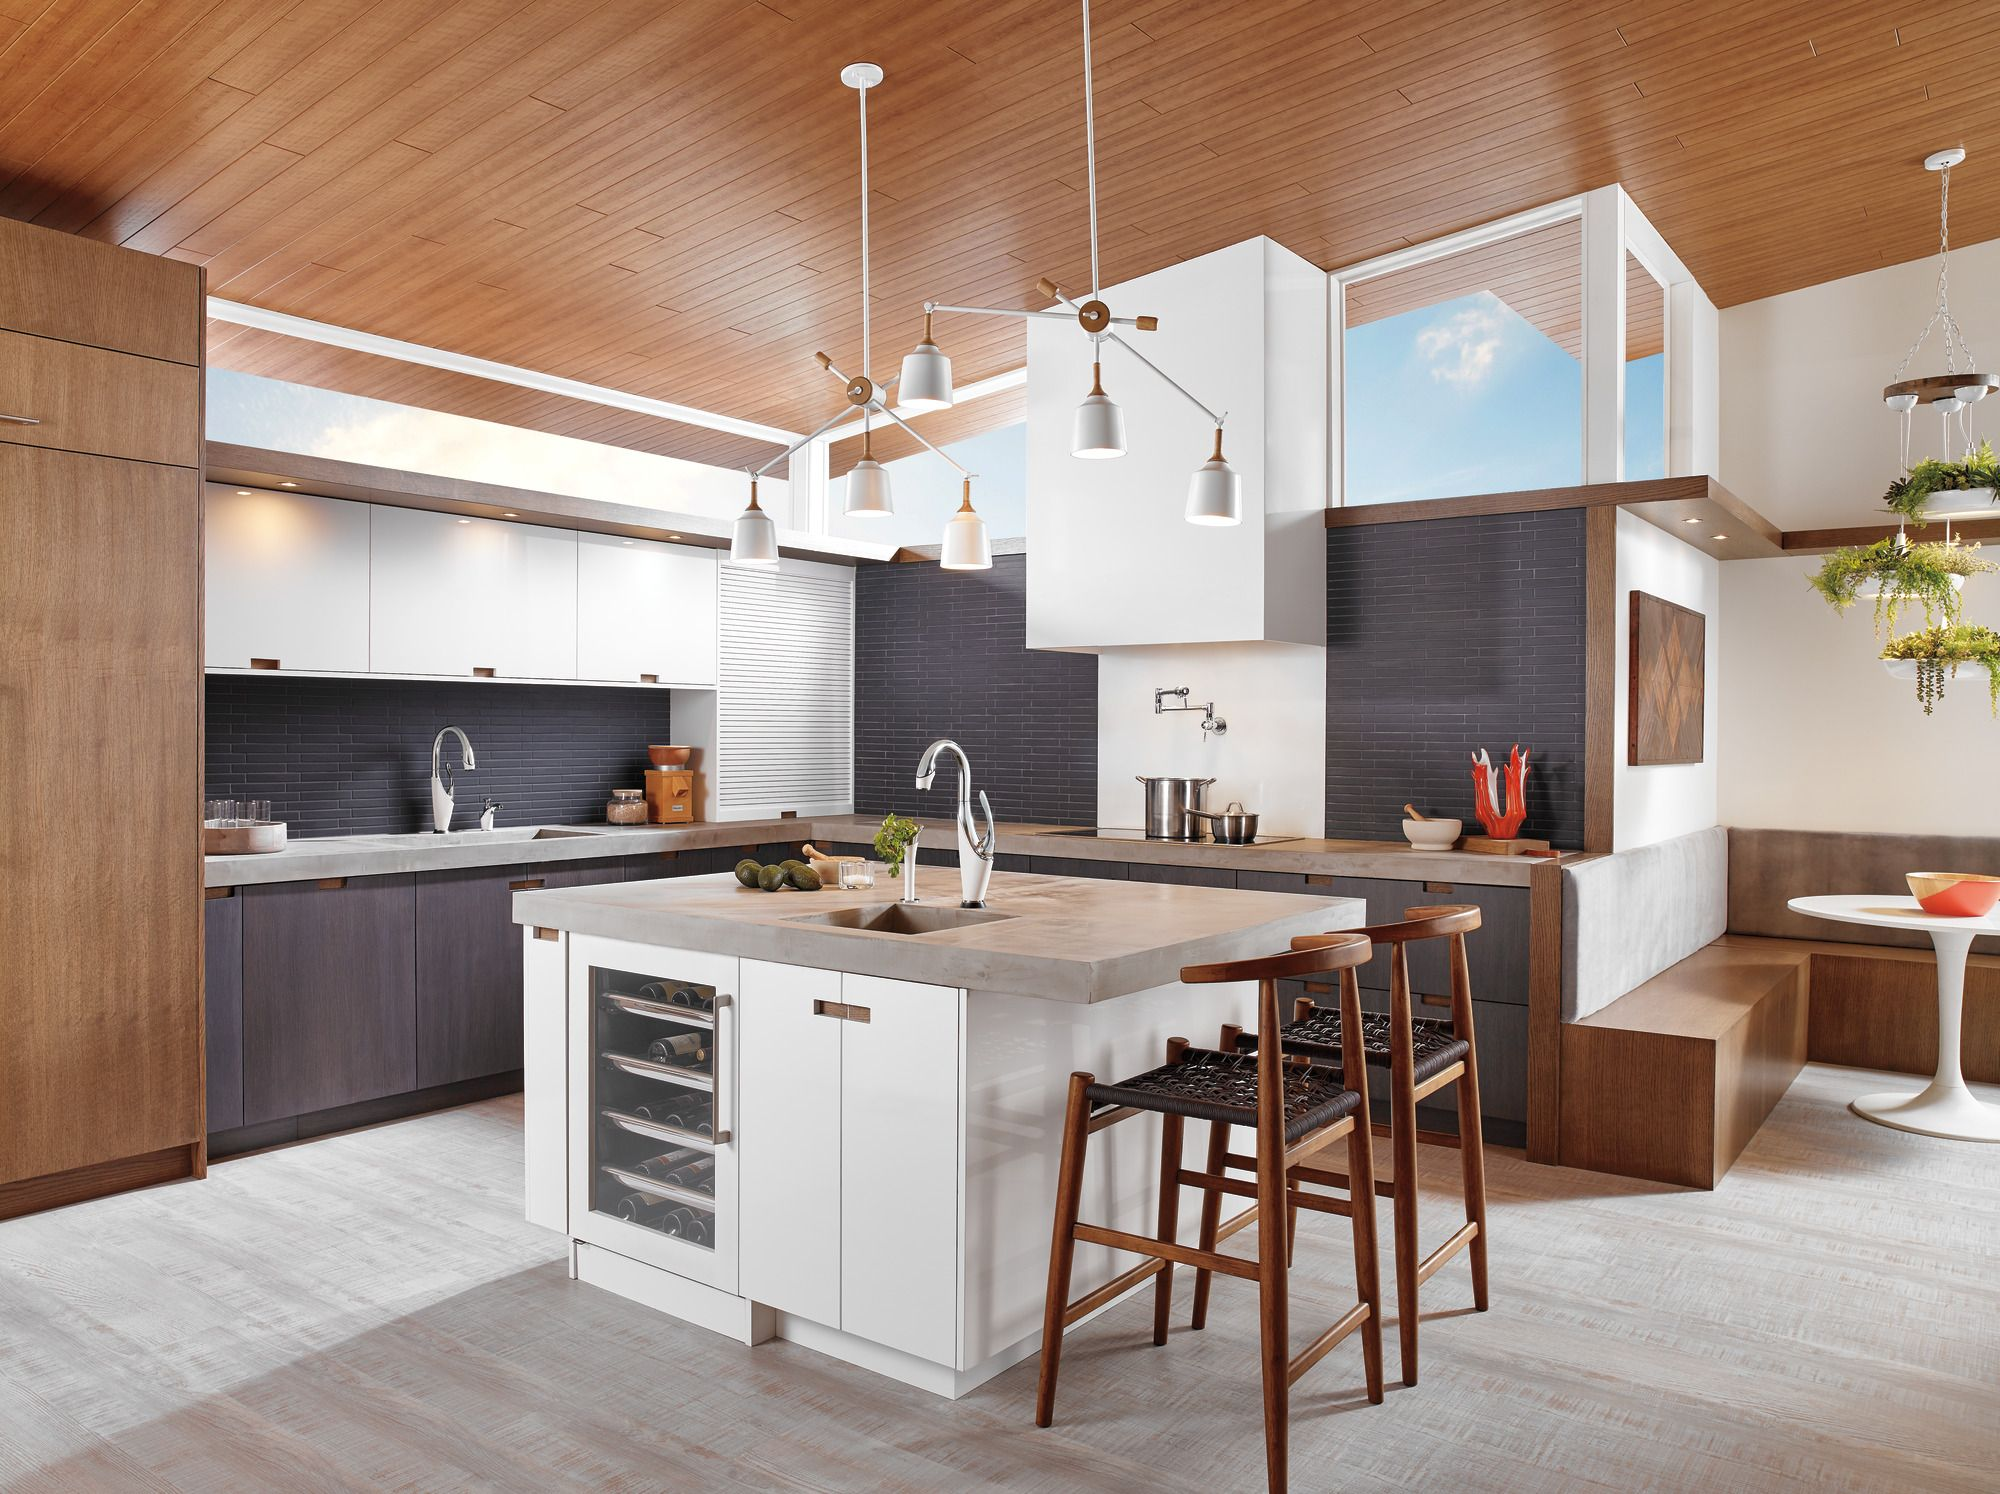 Design gallery kitchen brizo kitchen pinterest kitchen